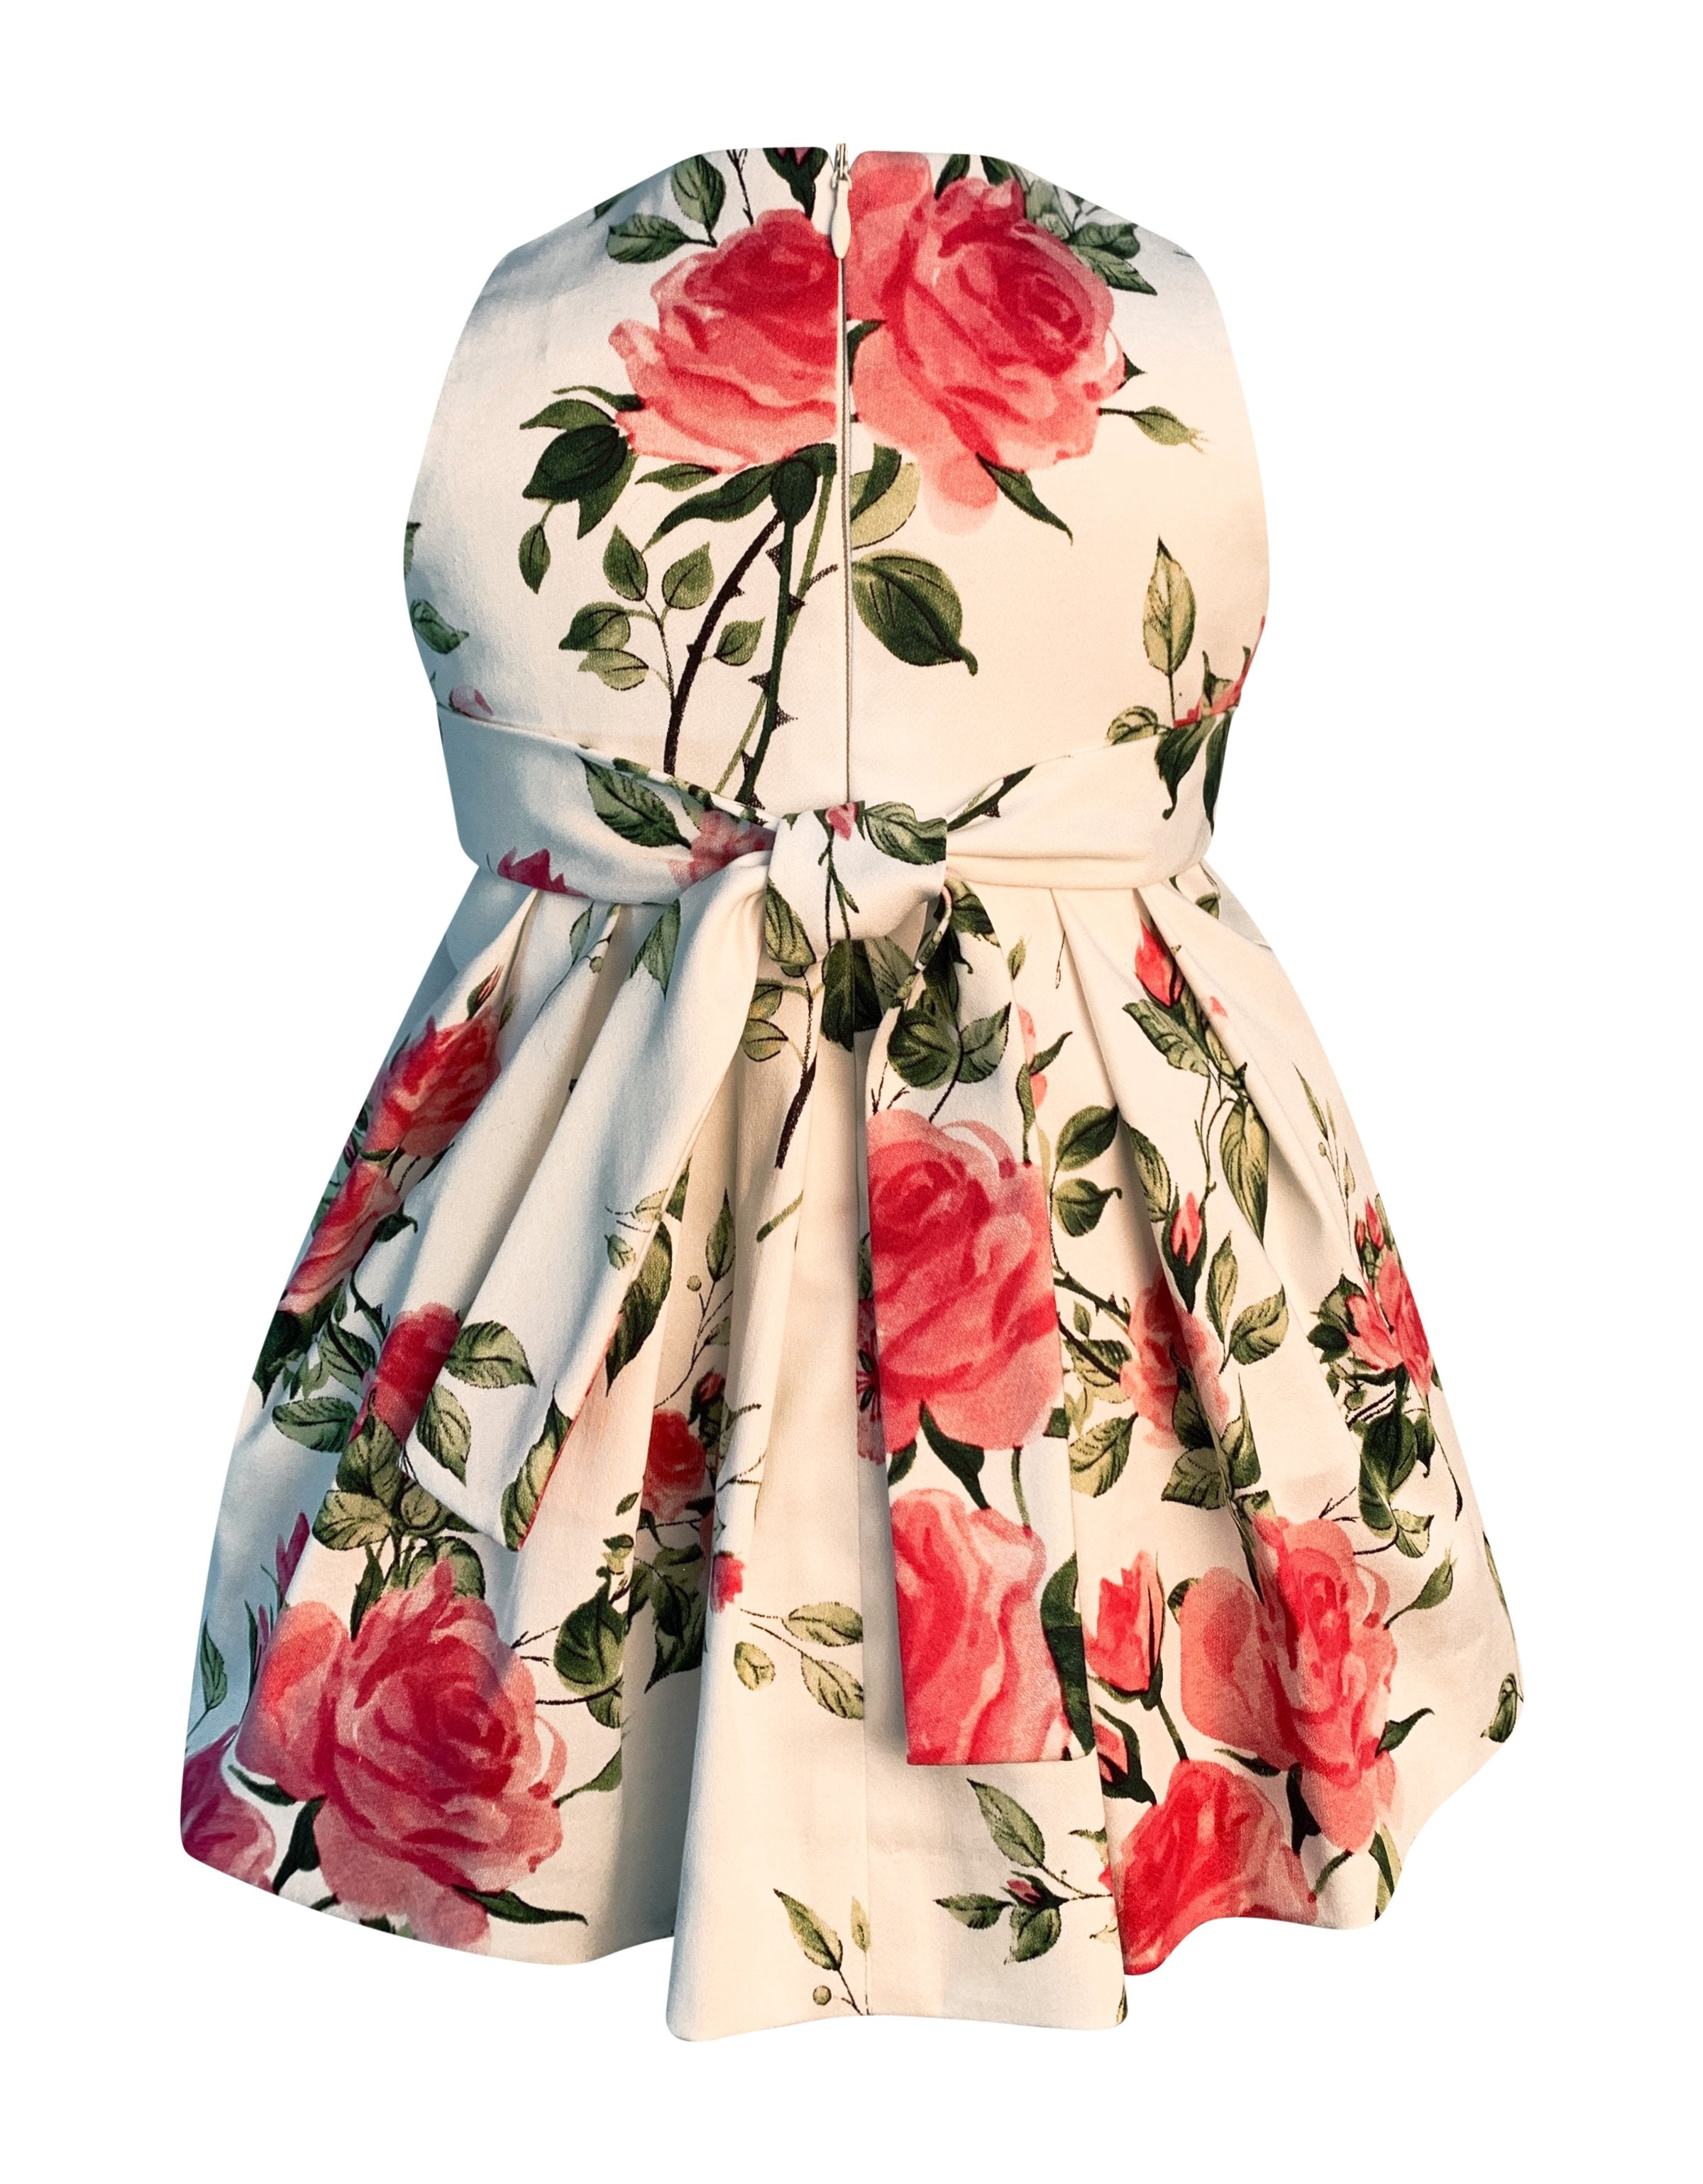 Helena and Harry Girl's Petal Pink Rose Print Dress